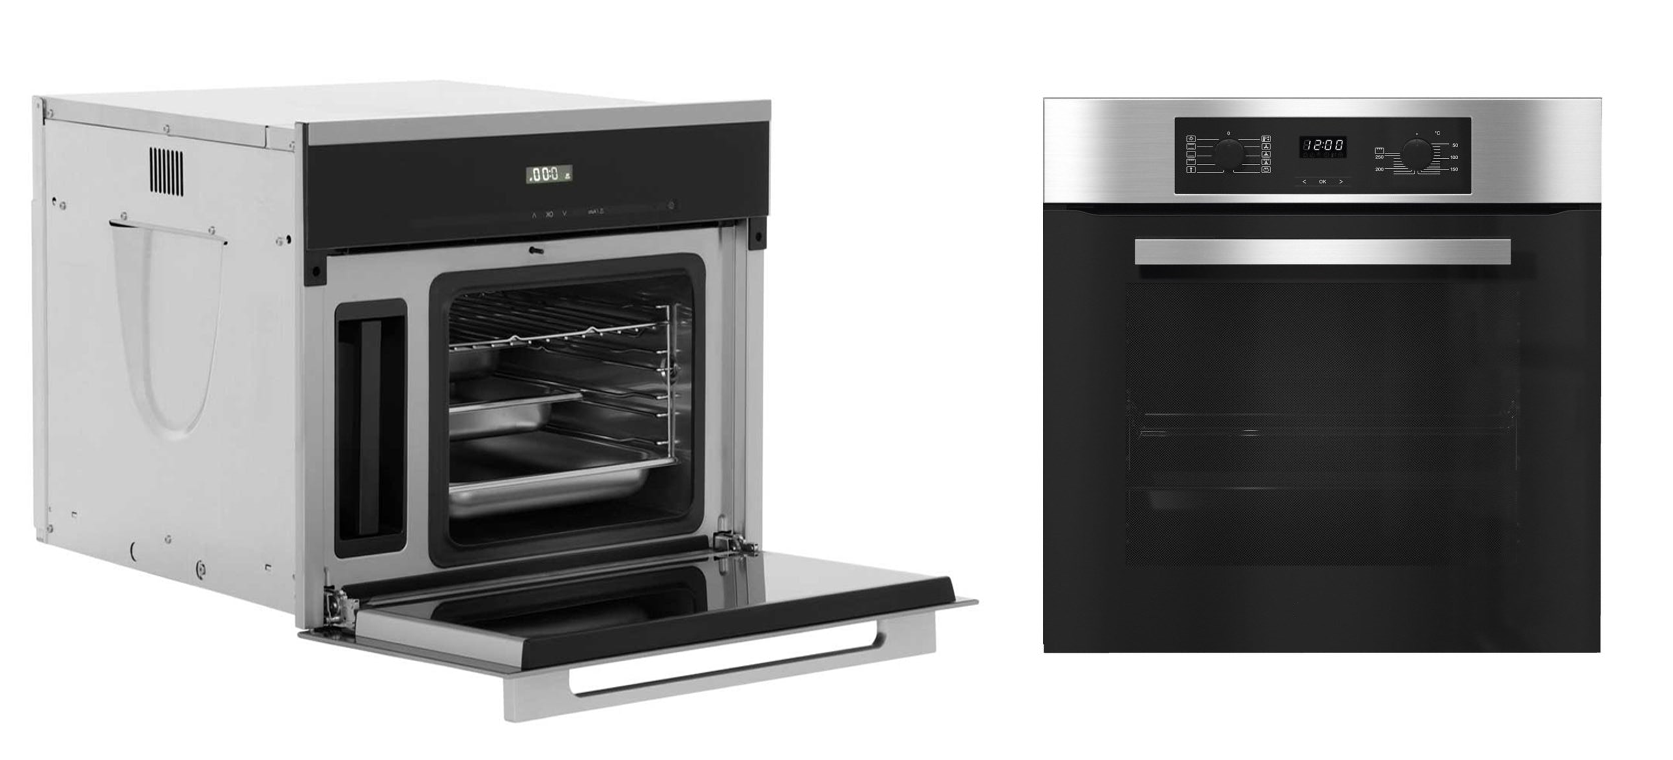 Kitchen Oven Repair | Commercial Oven Repair | House Oven Repair | Service Center | Authorised Service Center